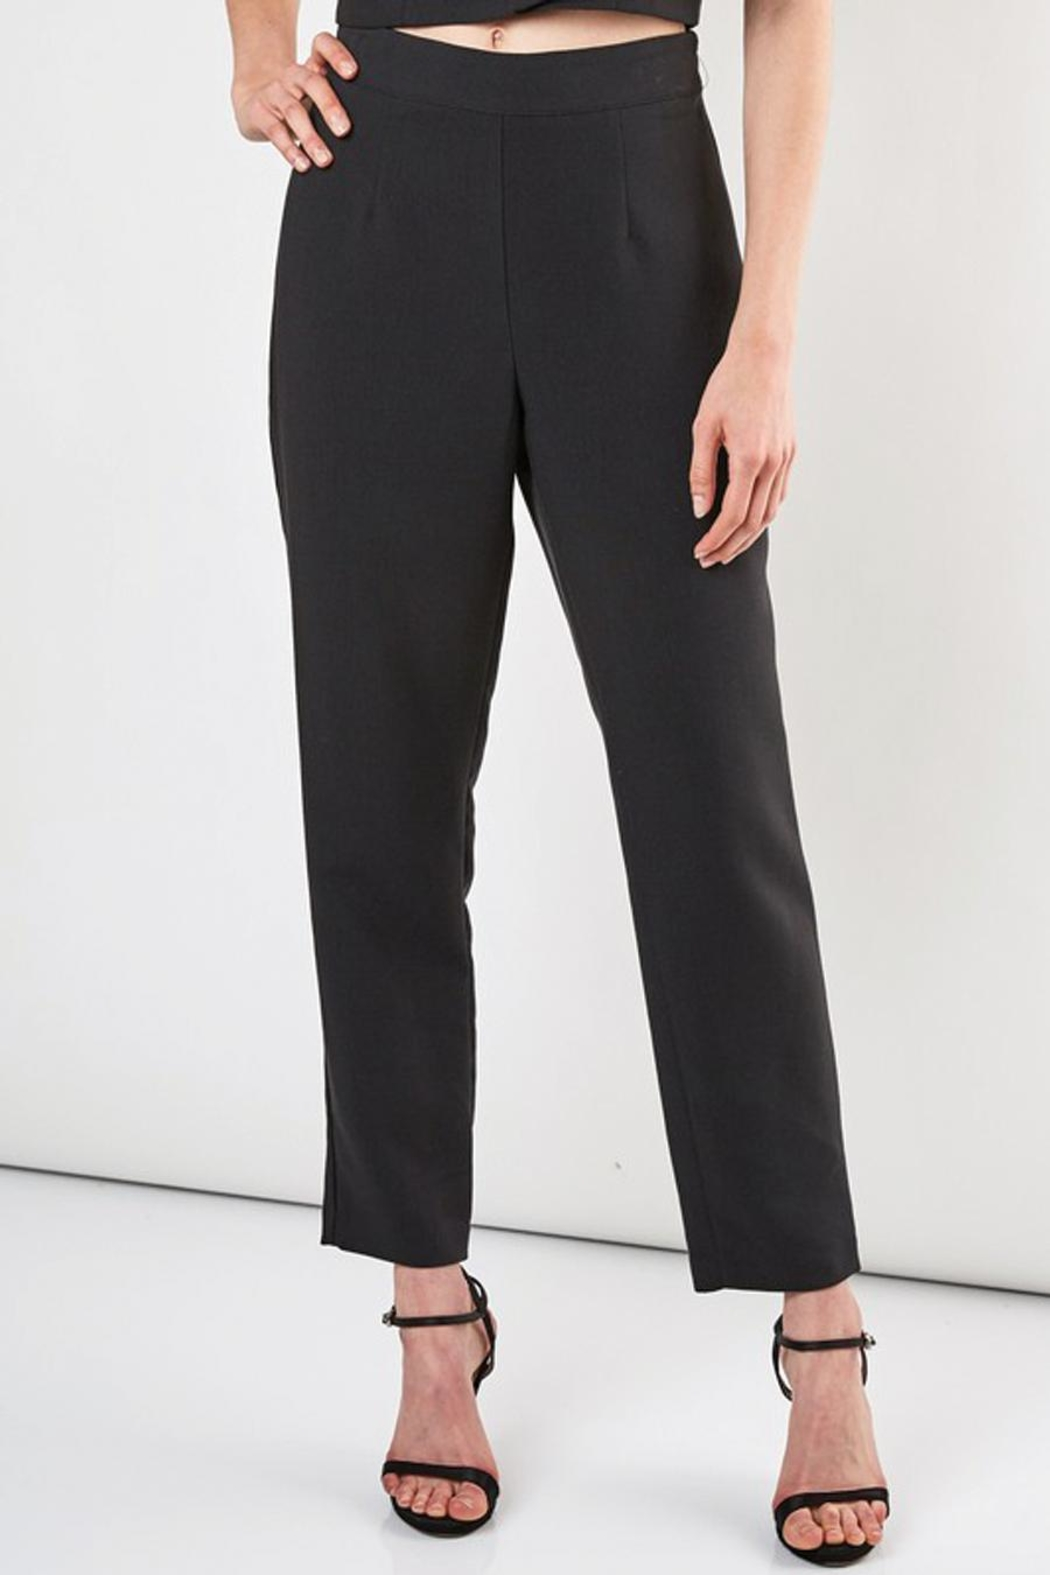 Do & Be Slim Fit Pant With Side Zipper - Main Image